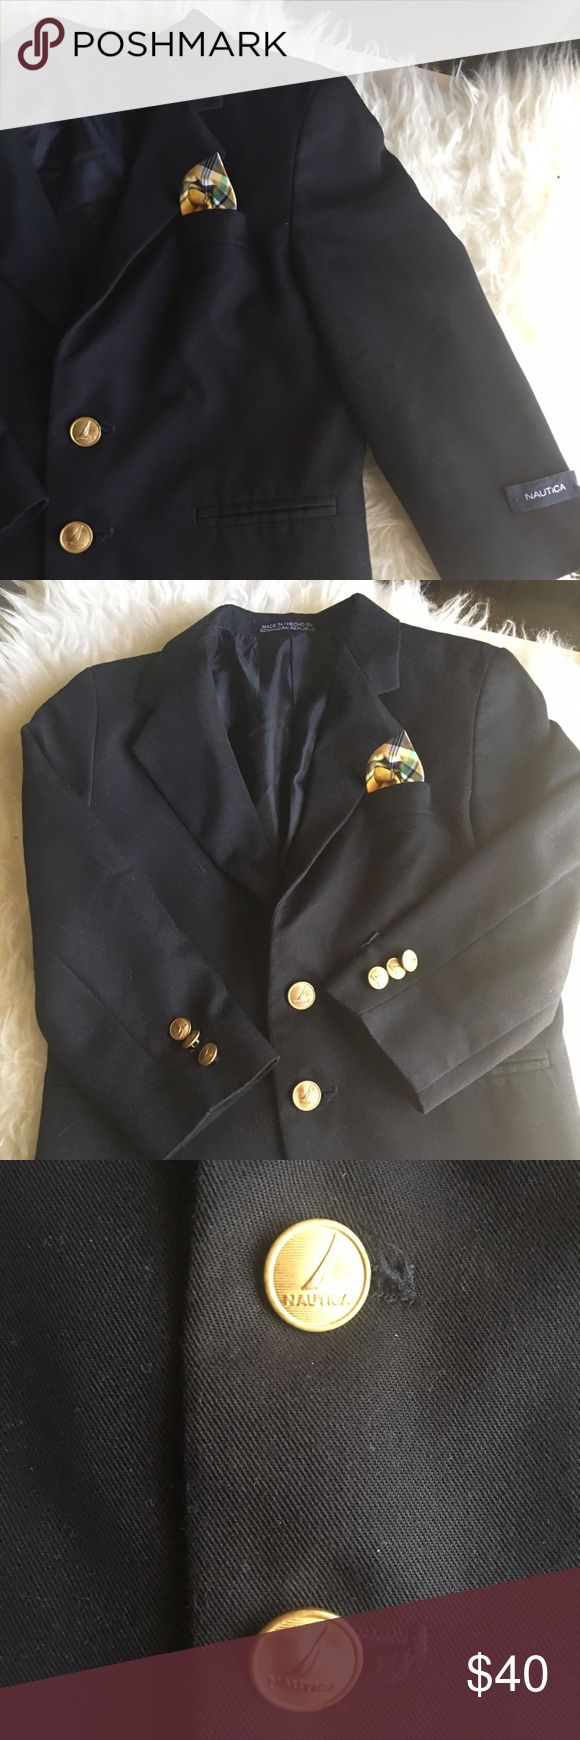 Nautica Kids Navy Blazer Single-breasted, two button blazer featuring a flat chest pocket, 2 flat hand pockets and a 3 button cuff. Gold- tone buttons lend a prep edge to this classic piece. Fully lined, Dry clean only Nautica Jackets & Coats Blazers